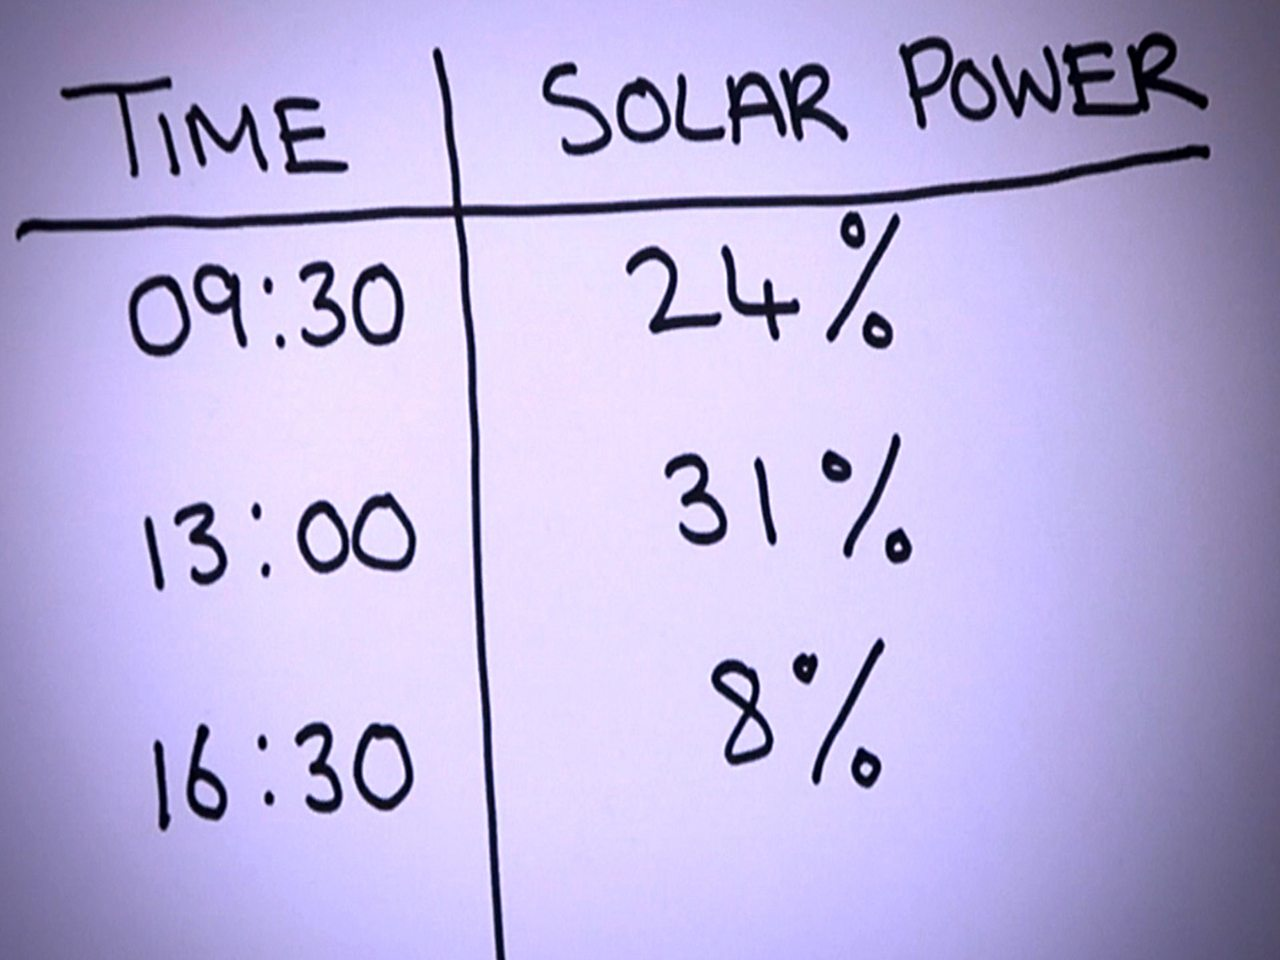 A simple table showing the results of the sun's strength, where it compares time and percentage of solar power